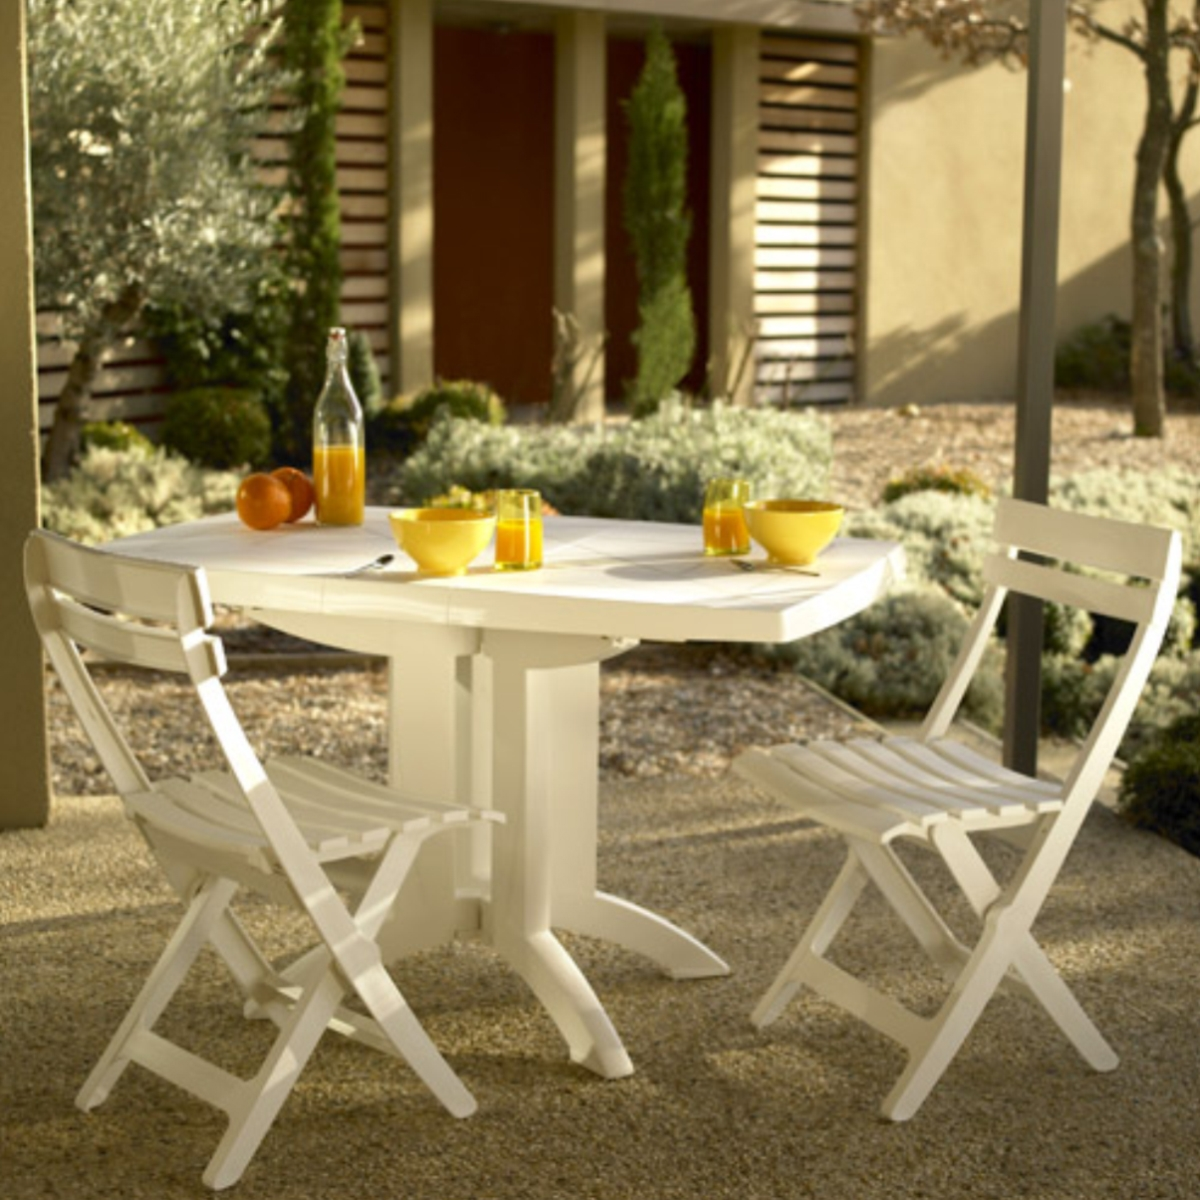 Table de jardin pliante vega grosfillex - Table jardin grofilex besancon ...